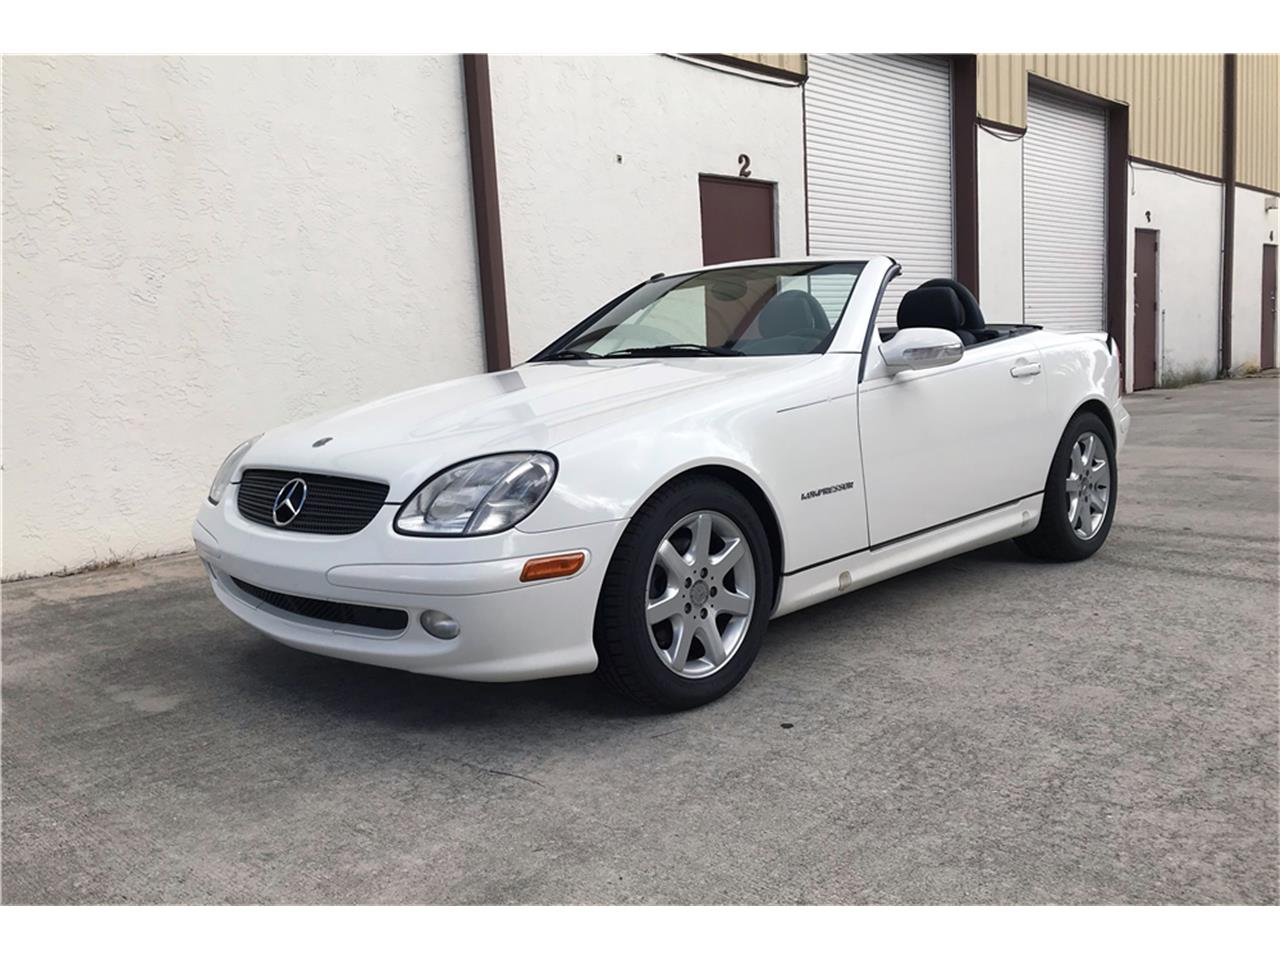 2002 Mercedes Benz Slk230 For Sale Classiccars Com Cc 1073604